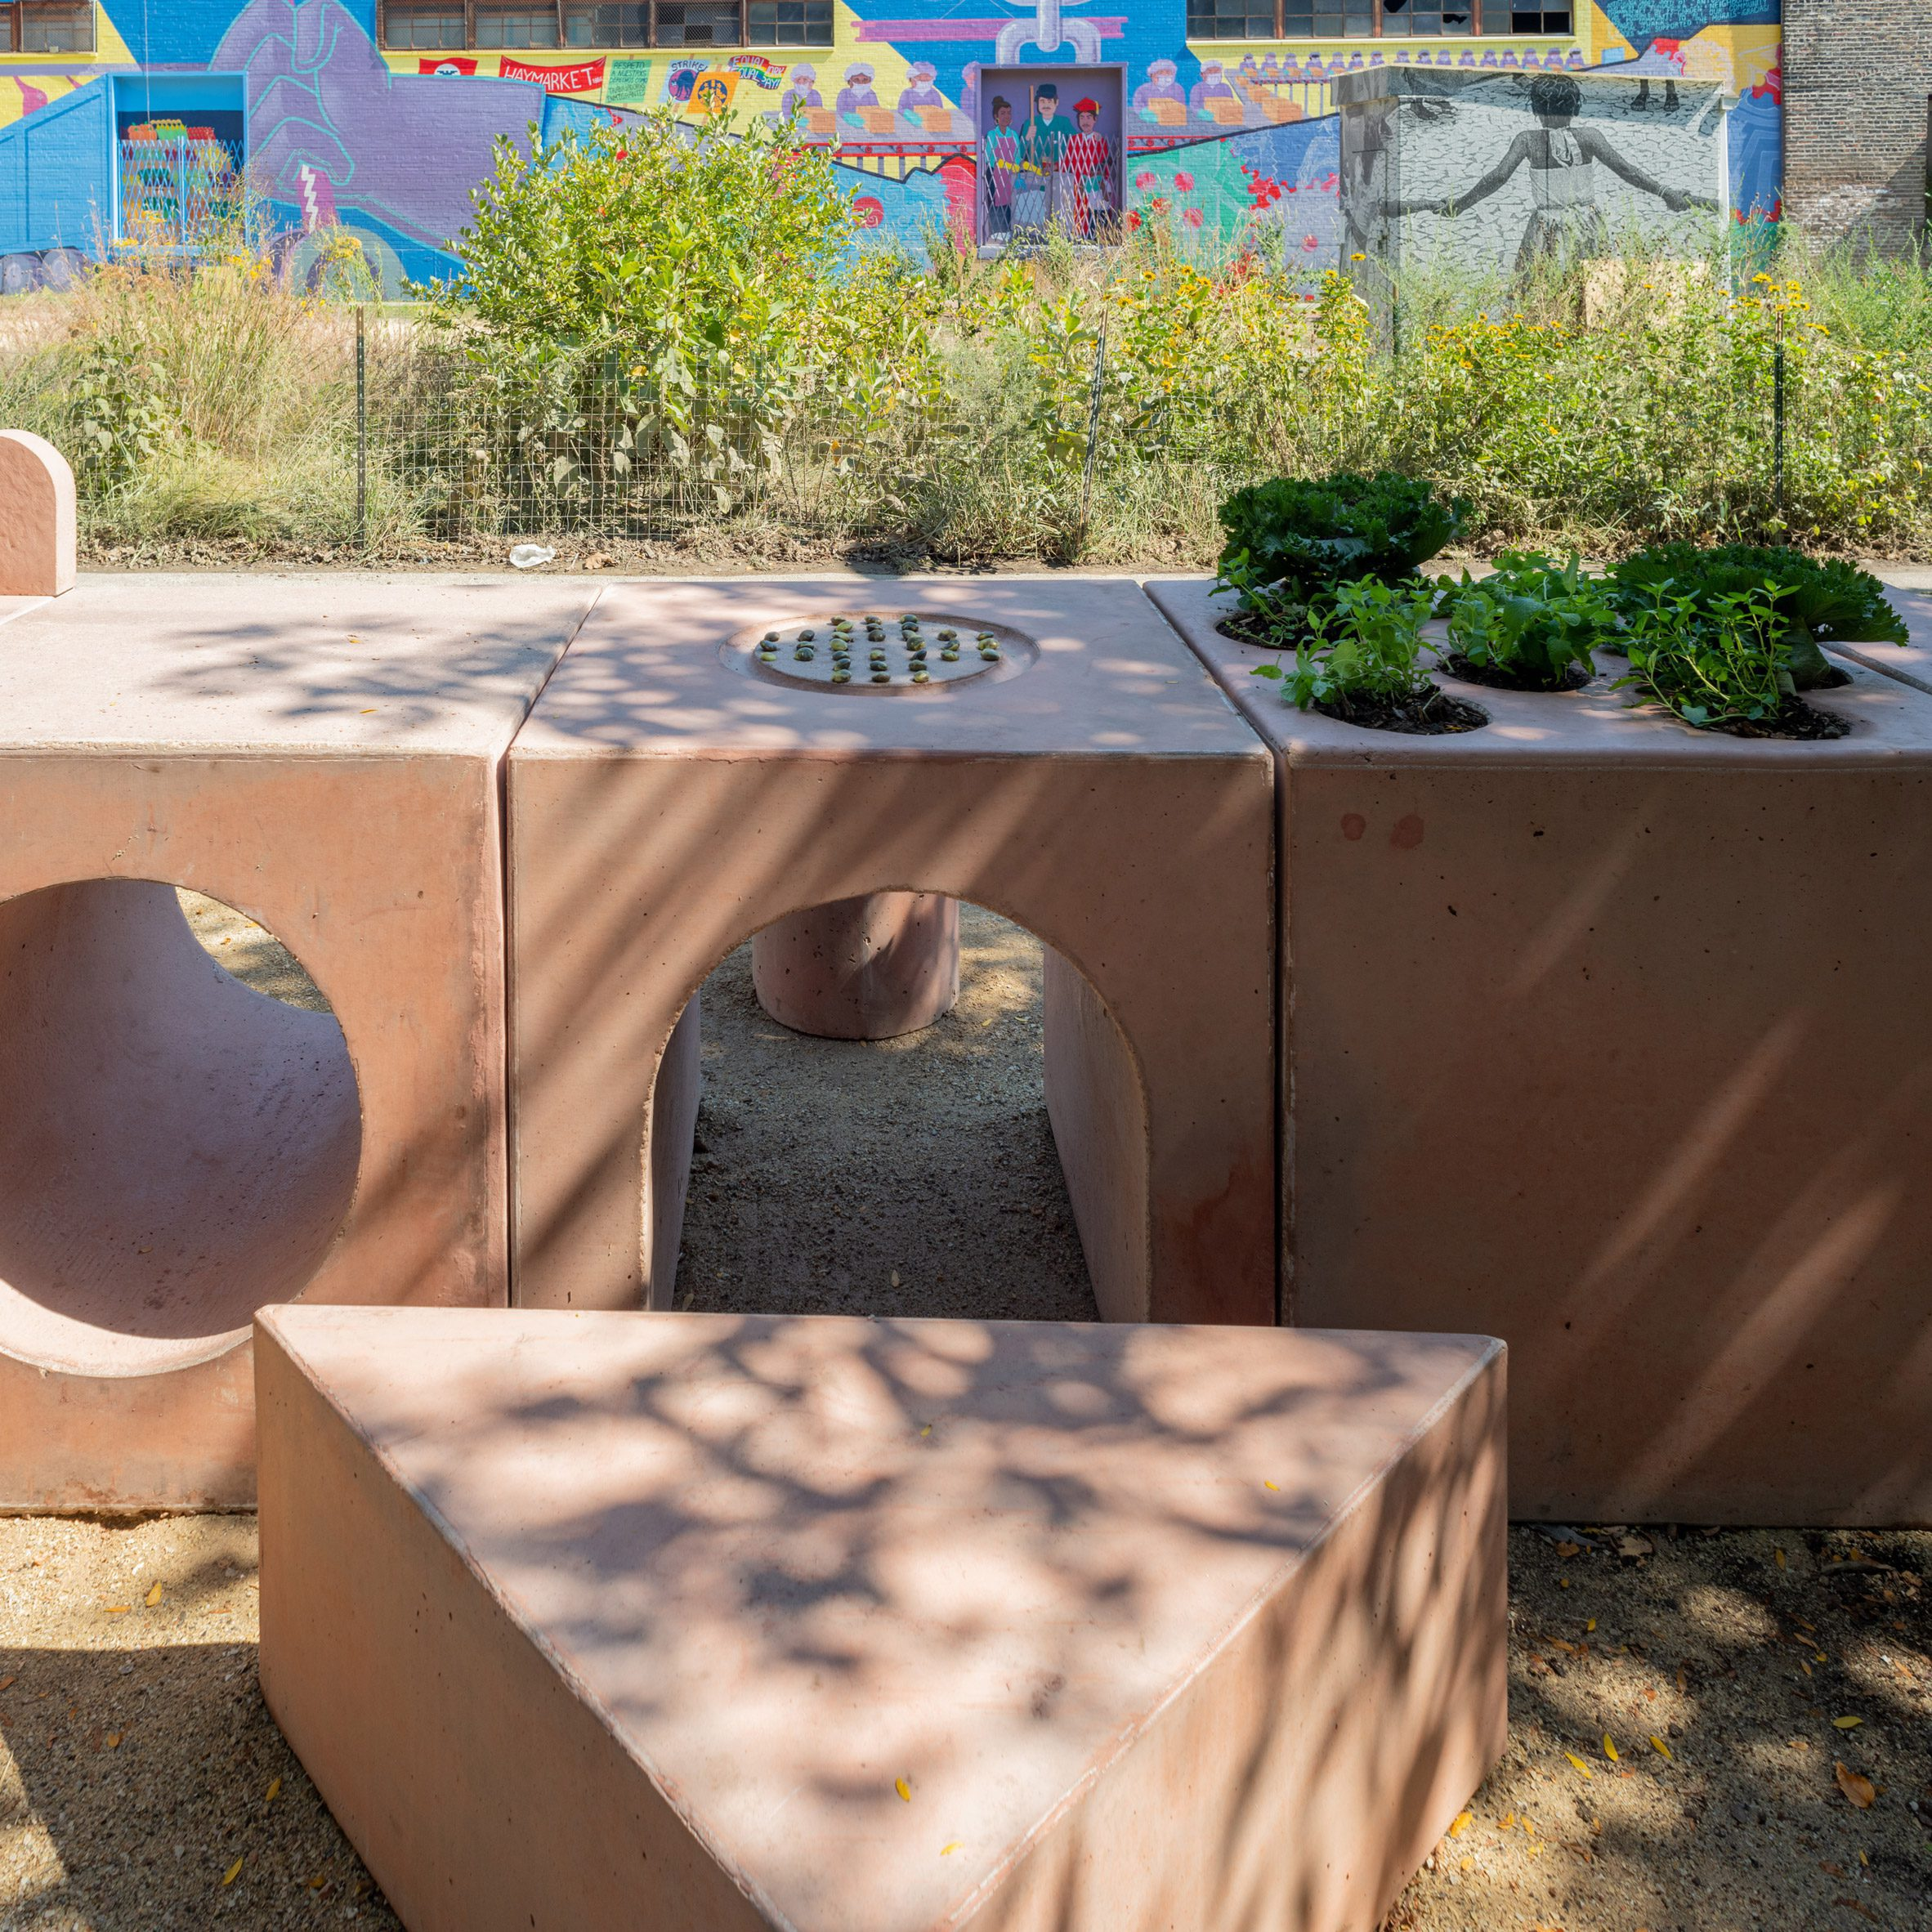 The Garden Table by Studio Ossidiana